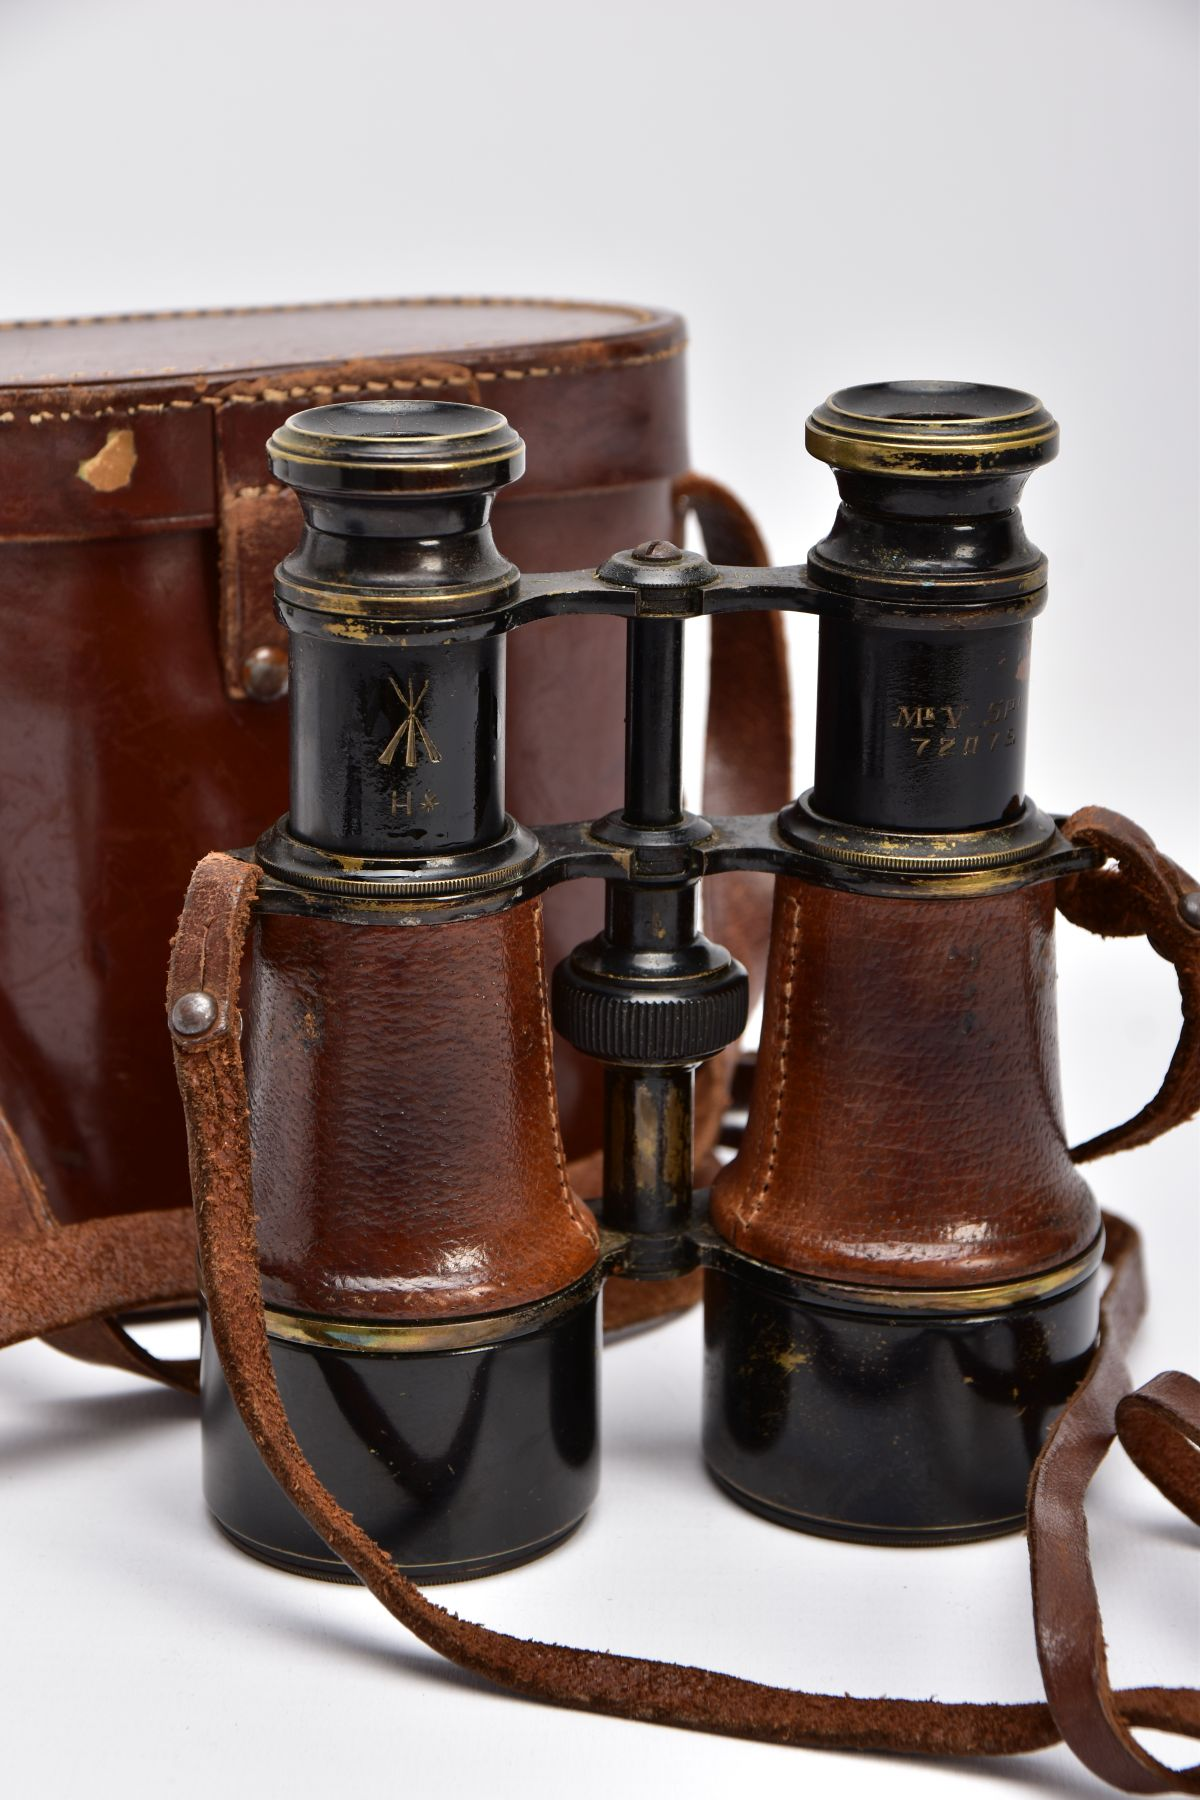 A BOXED PAIR OF FRENCH MADE MG (MINISTERE LA GUERE) WWI BINOCULARS, which are marked Mk V SPL & - Image 5 of 7